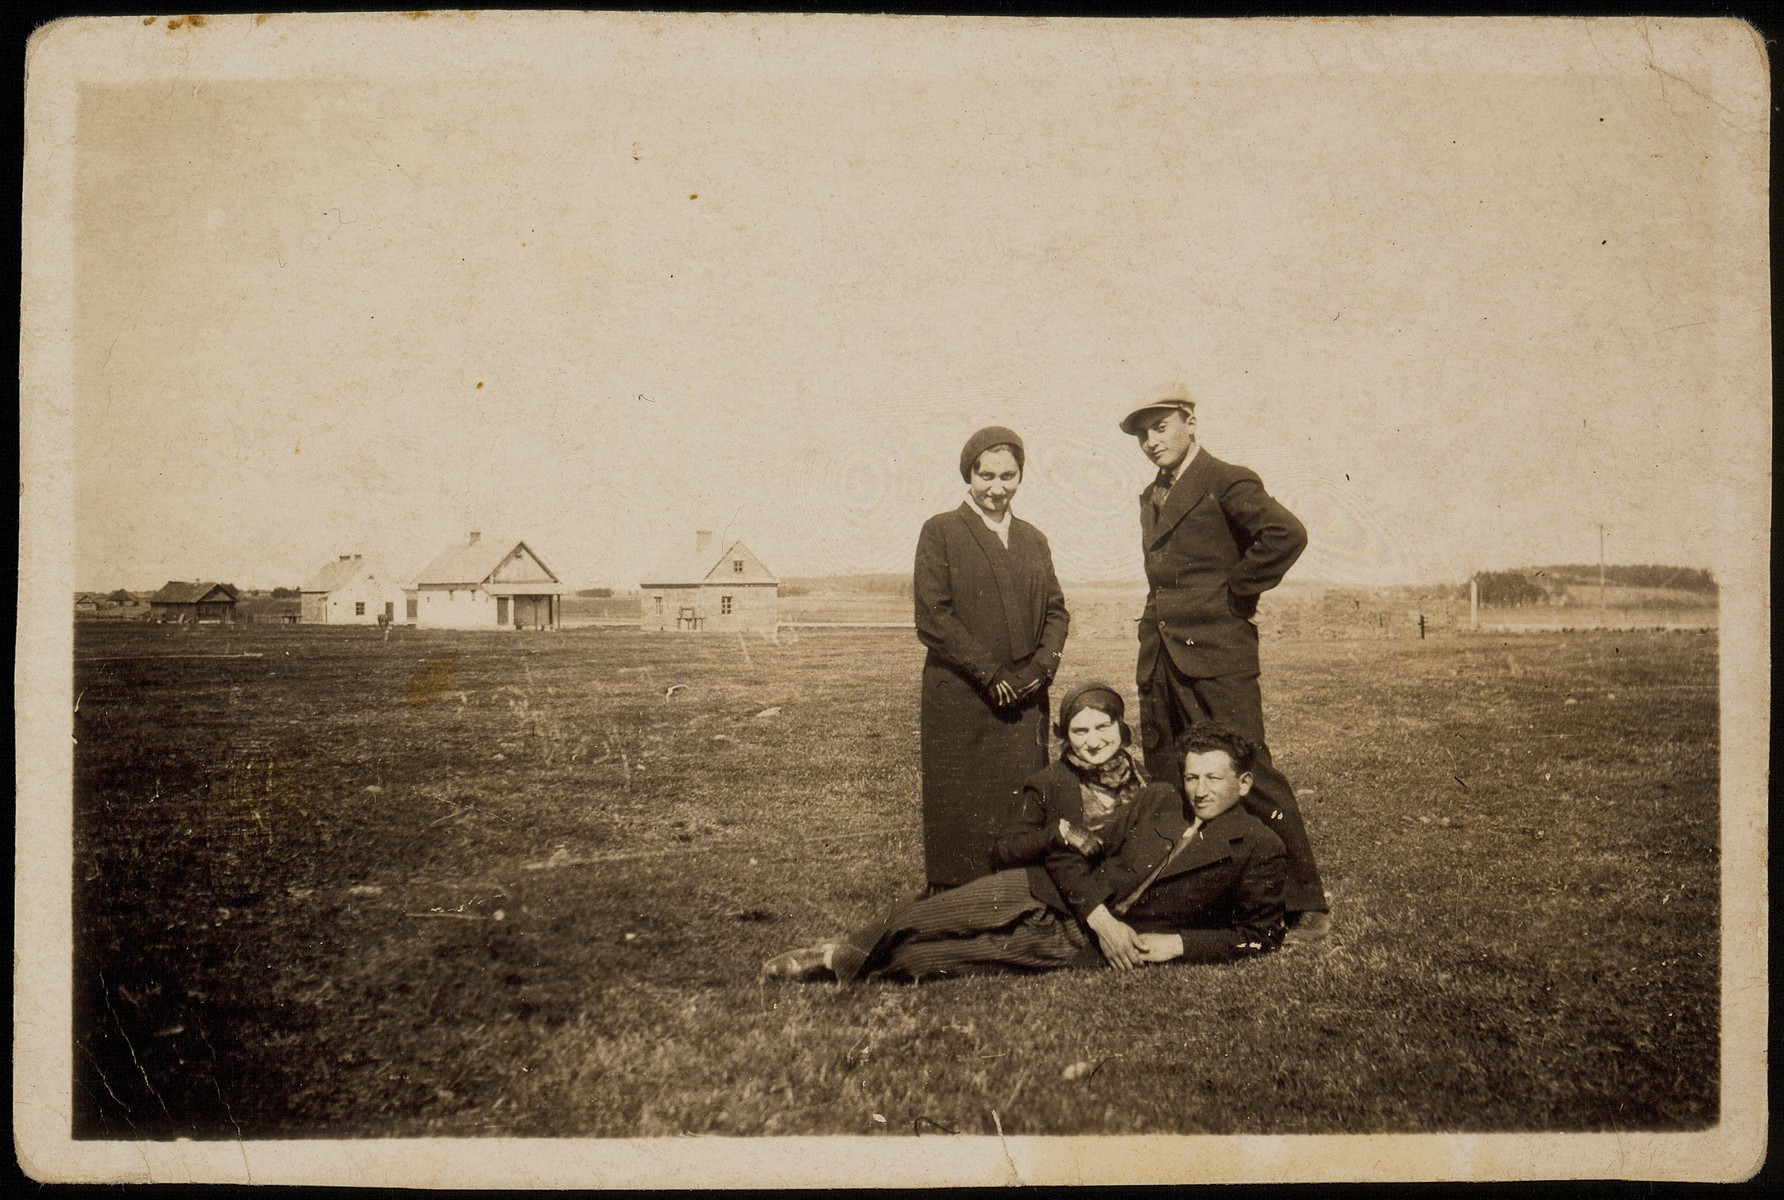 Members of the Sonenson family visit the shtetl Selo, a community for the insane.   Sitting on the ground is Leibke  (Aryeh) Sonenson and his wife Geneshe.  Leibke  (Aryeh) Sonenson and his wife Geneshe and their son, Meir were killed by the Germans during the September 1941 mass shooting action in Eisiskes.